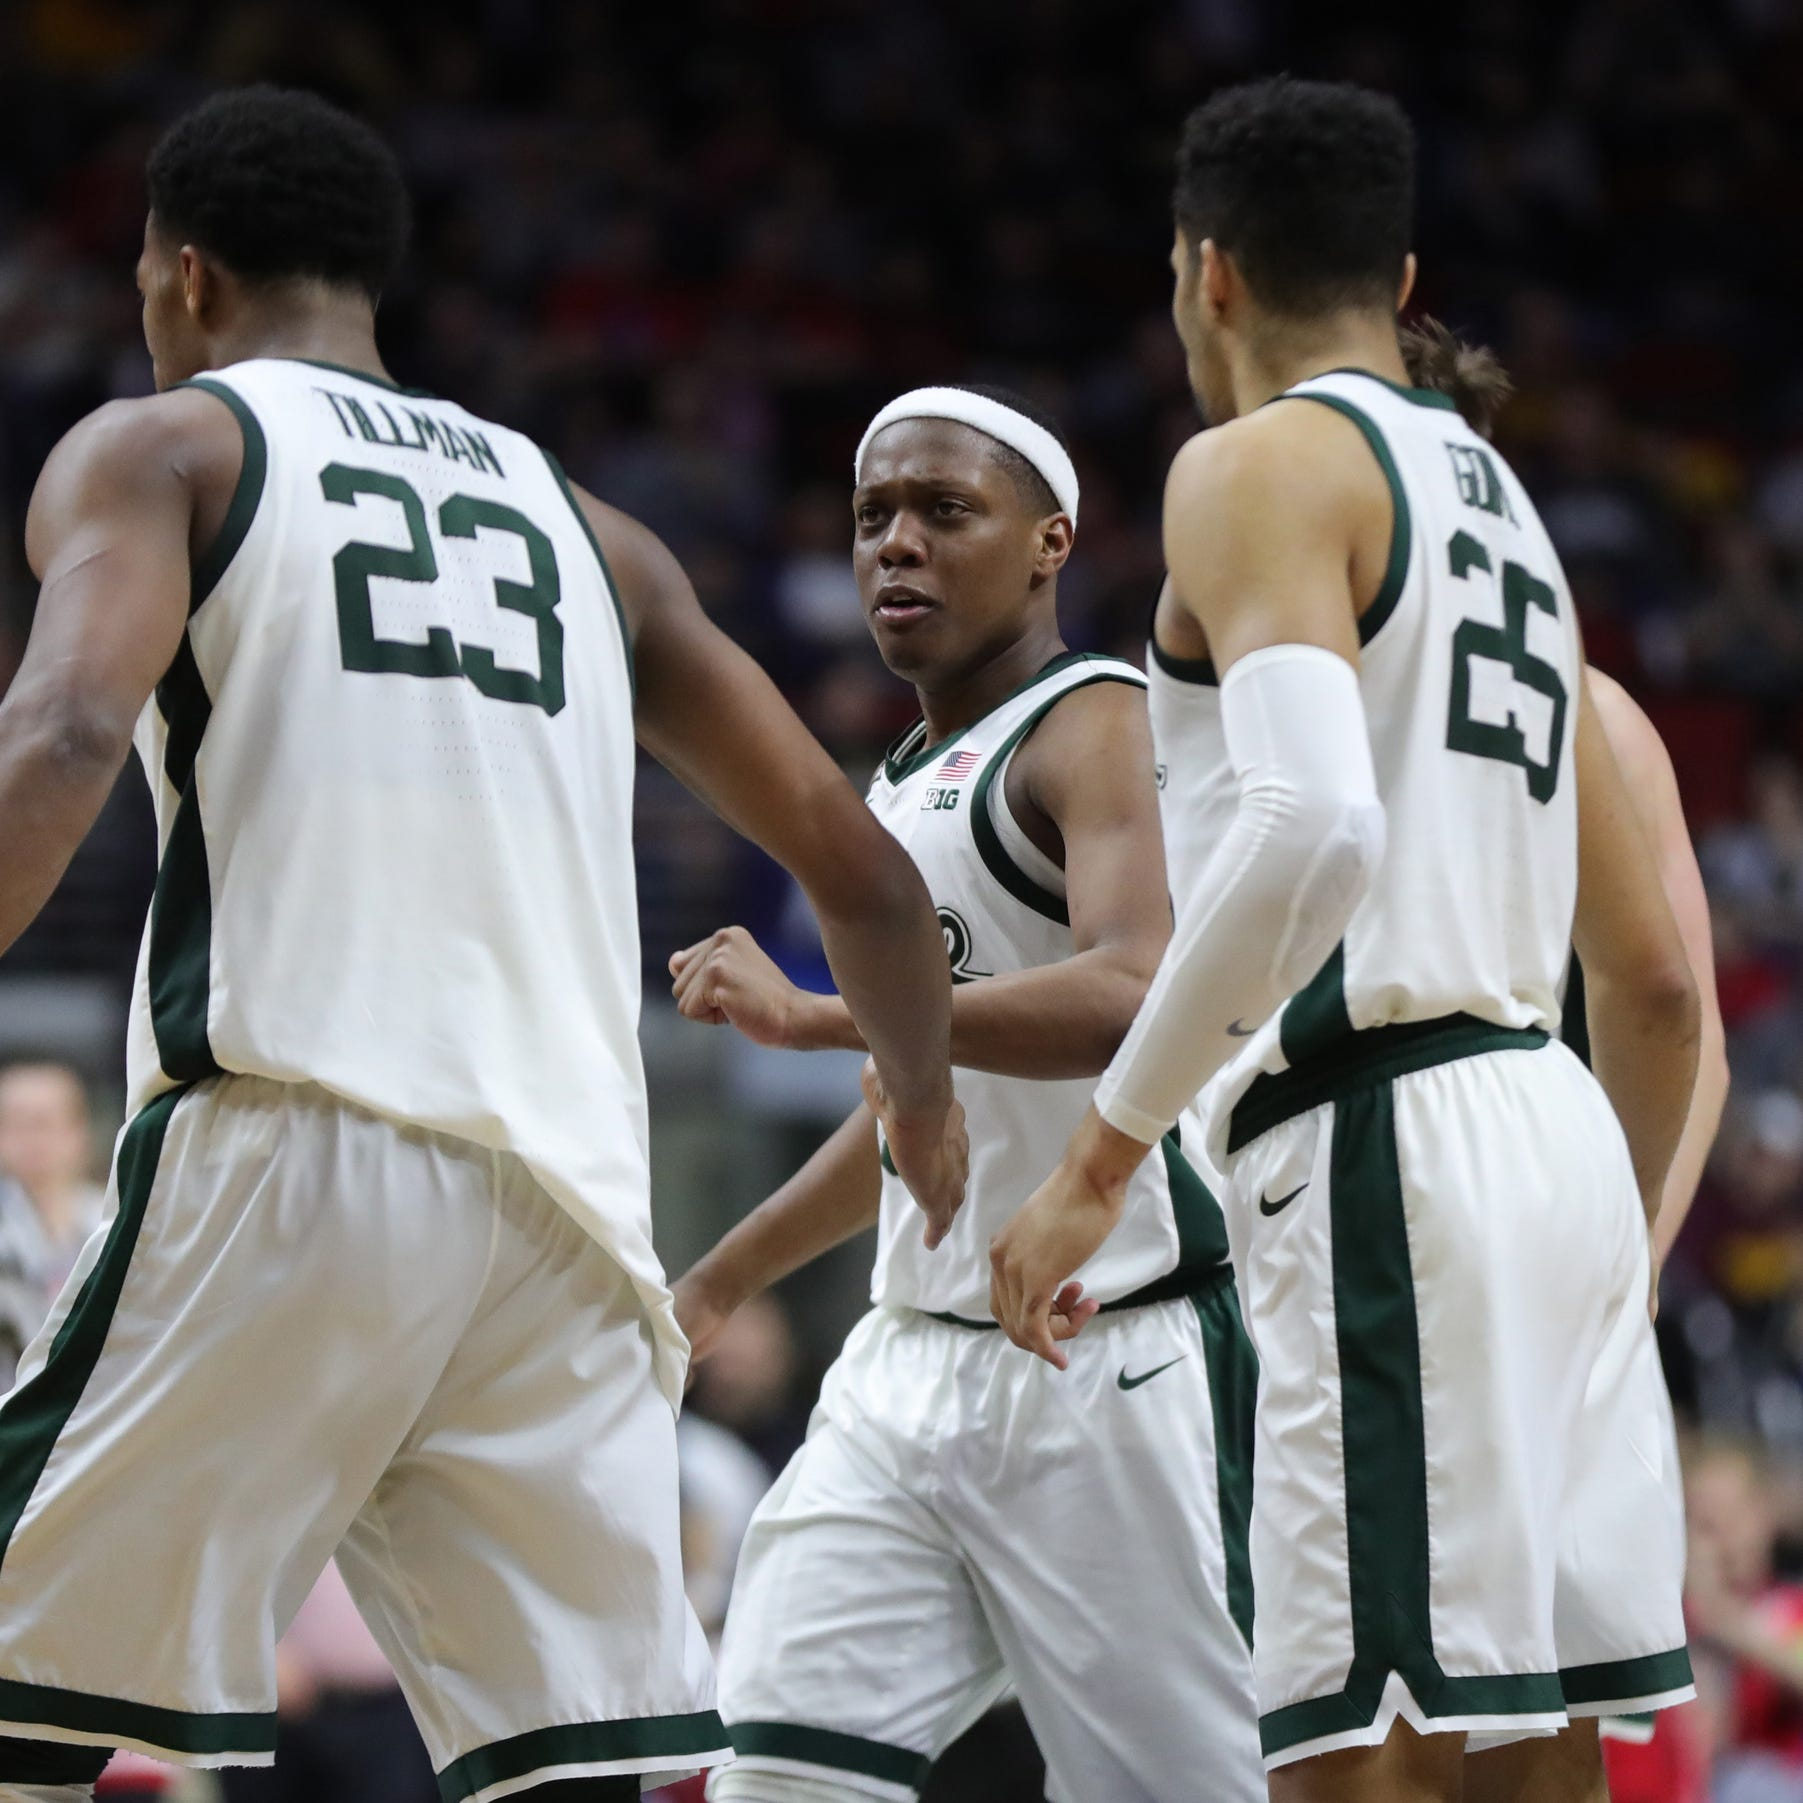 Michigan State's Cassius Winston earns another 2nd-team All-American honor